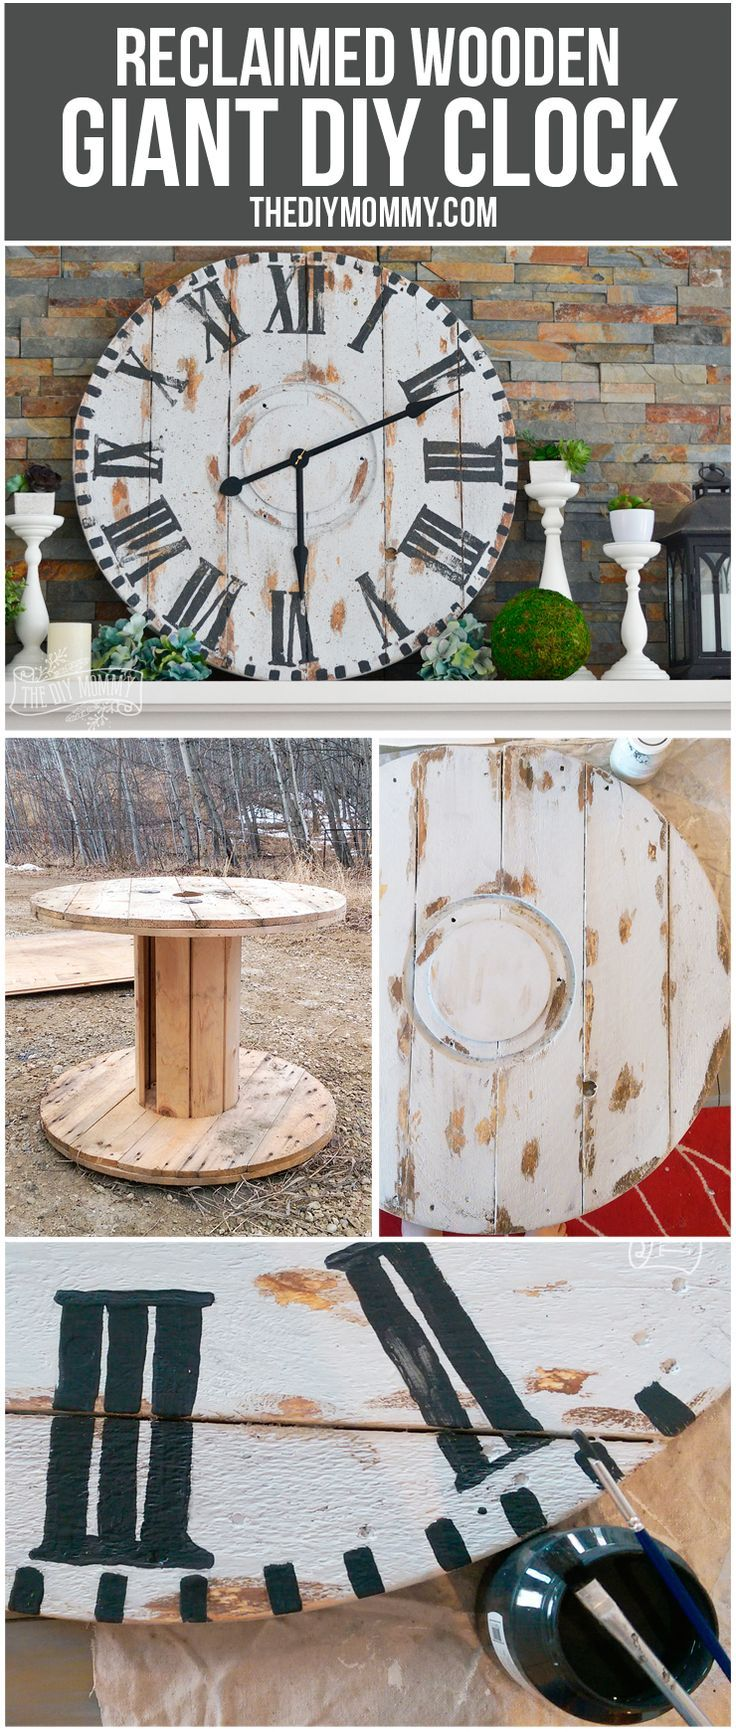 Make A Giant Reclaimed Wood Clock From An Electrical Reel 12monthsofdiy Barn Wood Crafts Rustic Wall Clocks Diy Clock